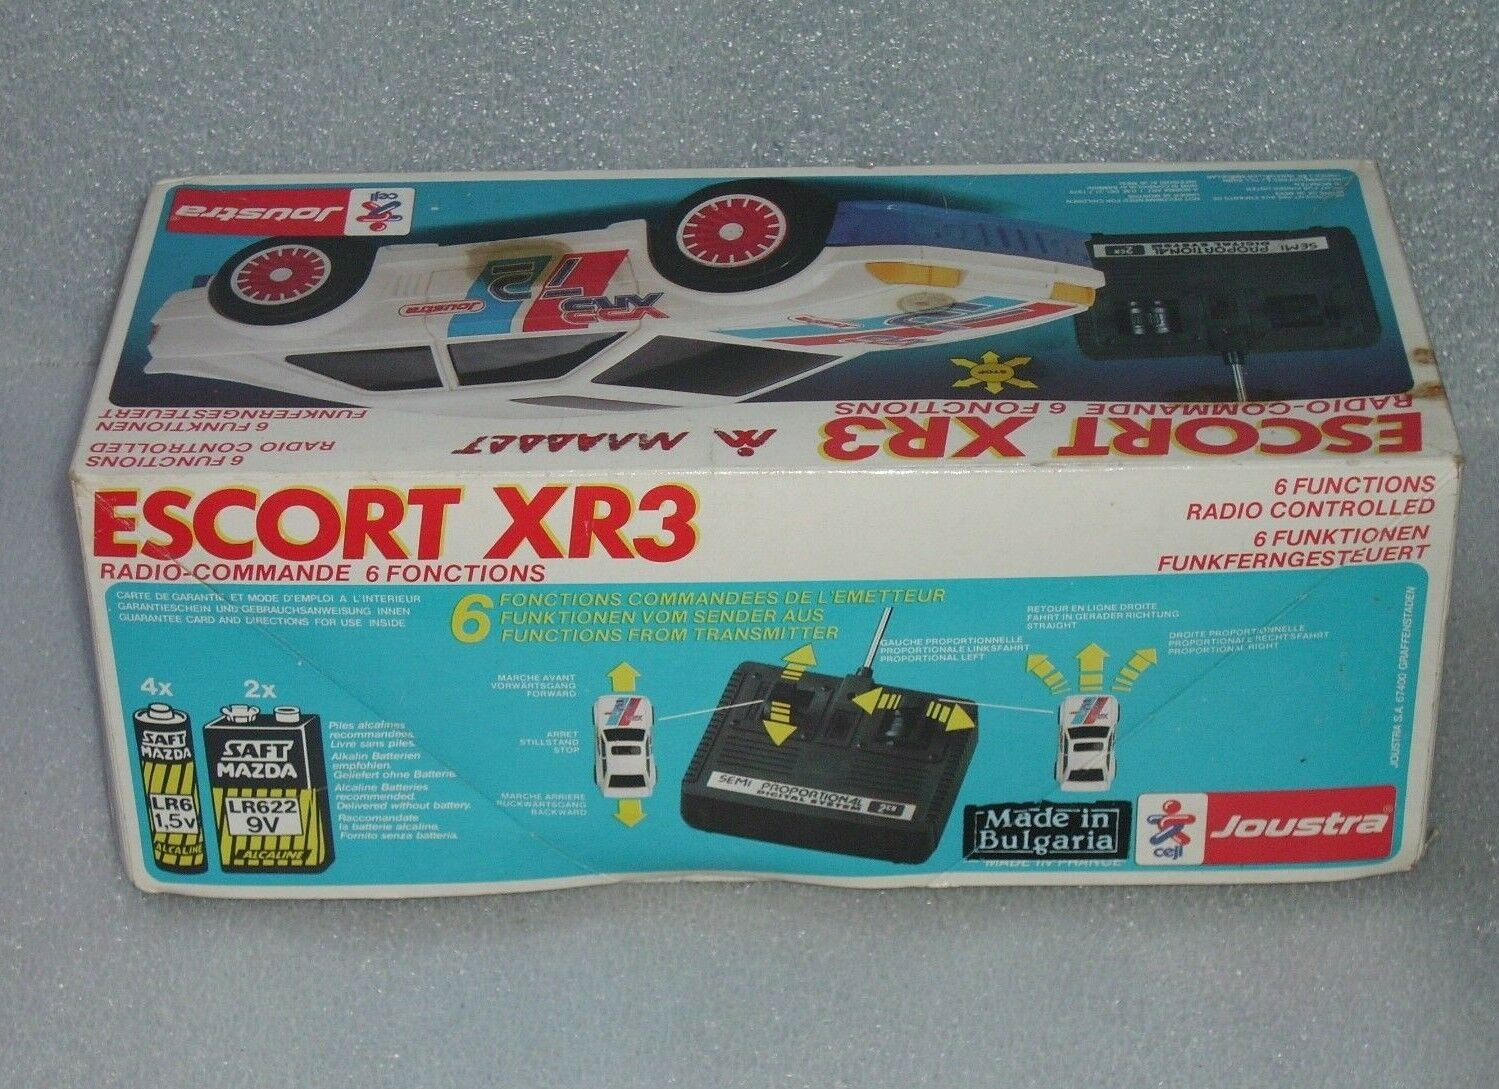 RARE VINTAGE JOUSTRA FORD ESCORT XR3 RADIO-CONTROL 6 FUNCTIONS, FRANCE-BULGARIA FRANCE-BULGARIA FRANCE-BULGARIA 22fea7